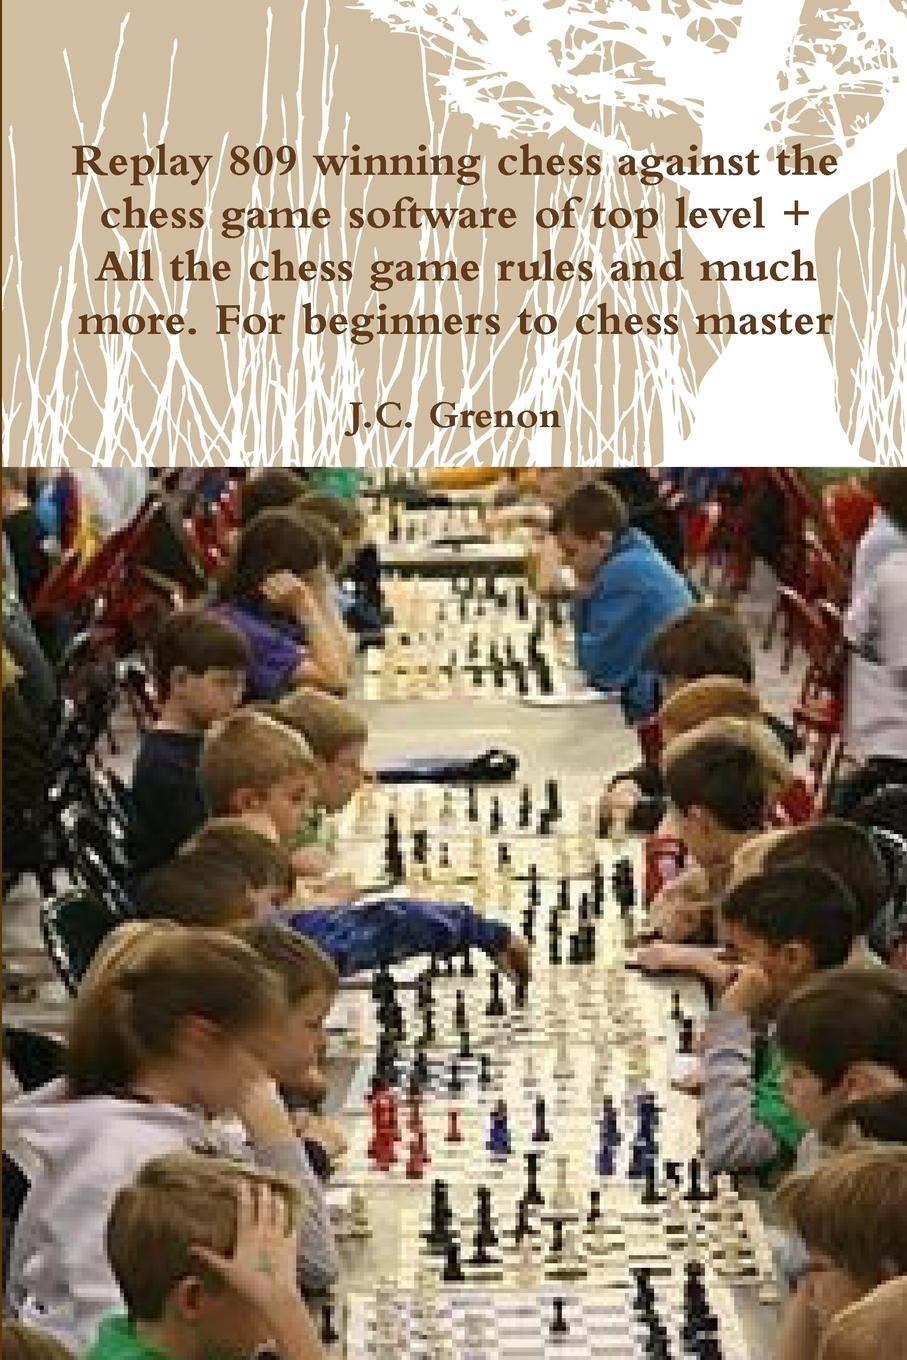 J.C. Grenon Replay 809 winning chess against the high chess software . All the chess rules and much more